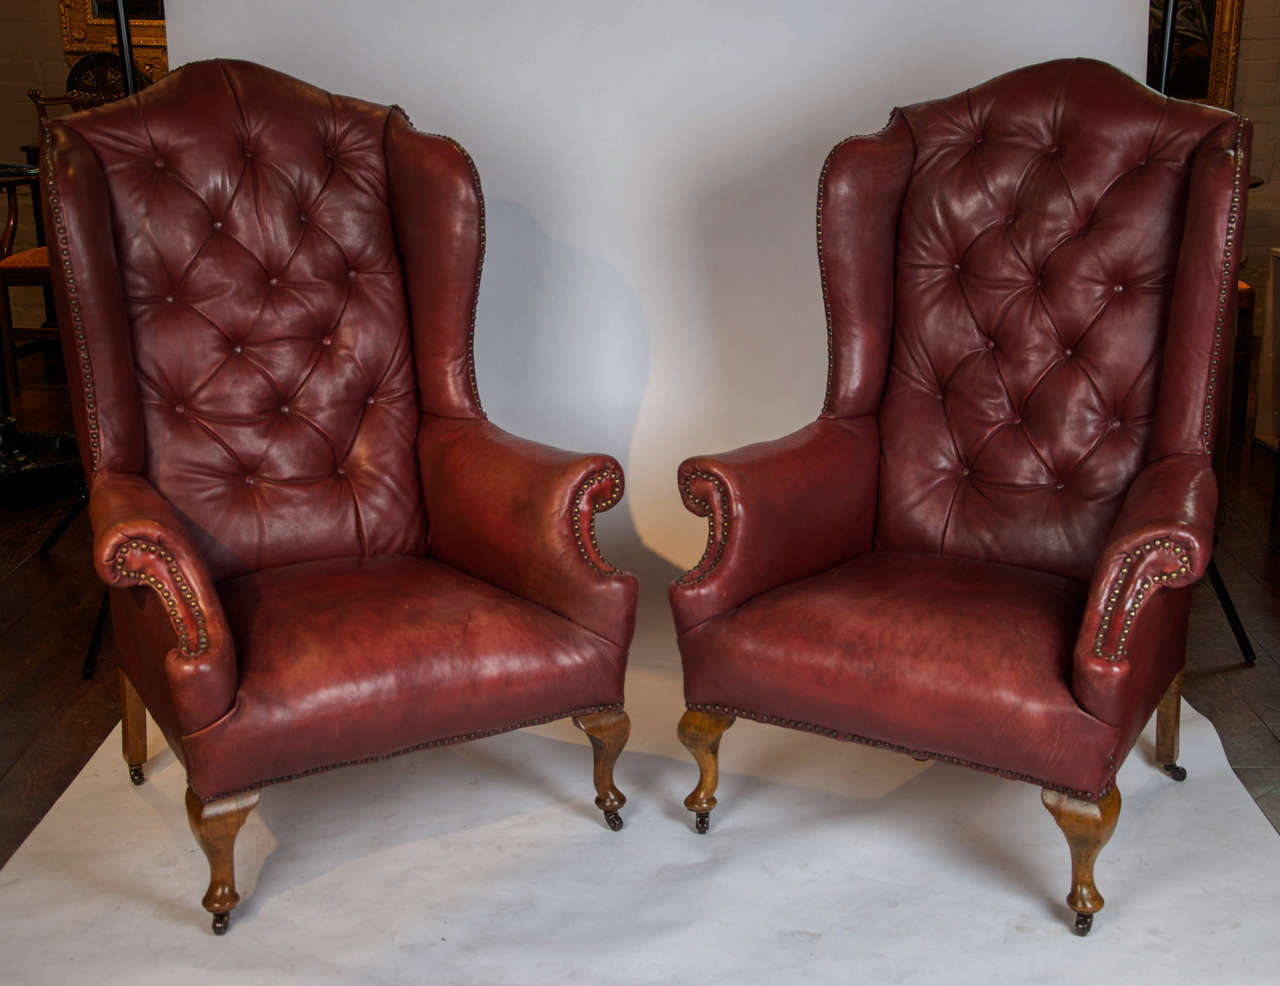 Merveilleux A Good Pair Of Early 20th Century Wing Back Chairs With Original Read  Leather And Buttoned